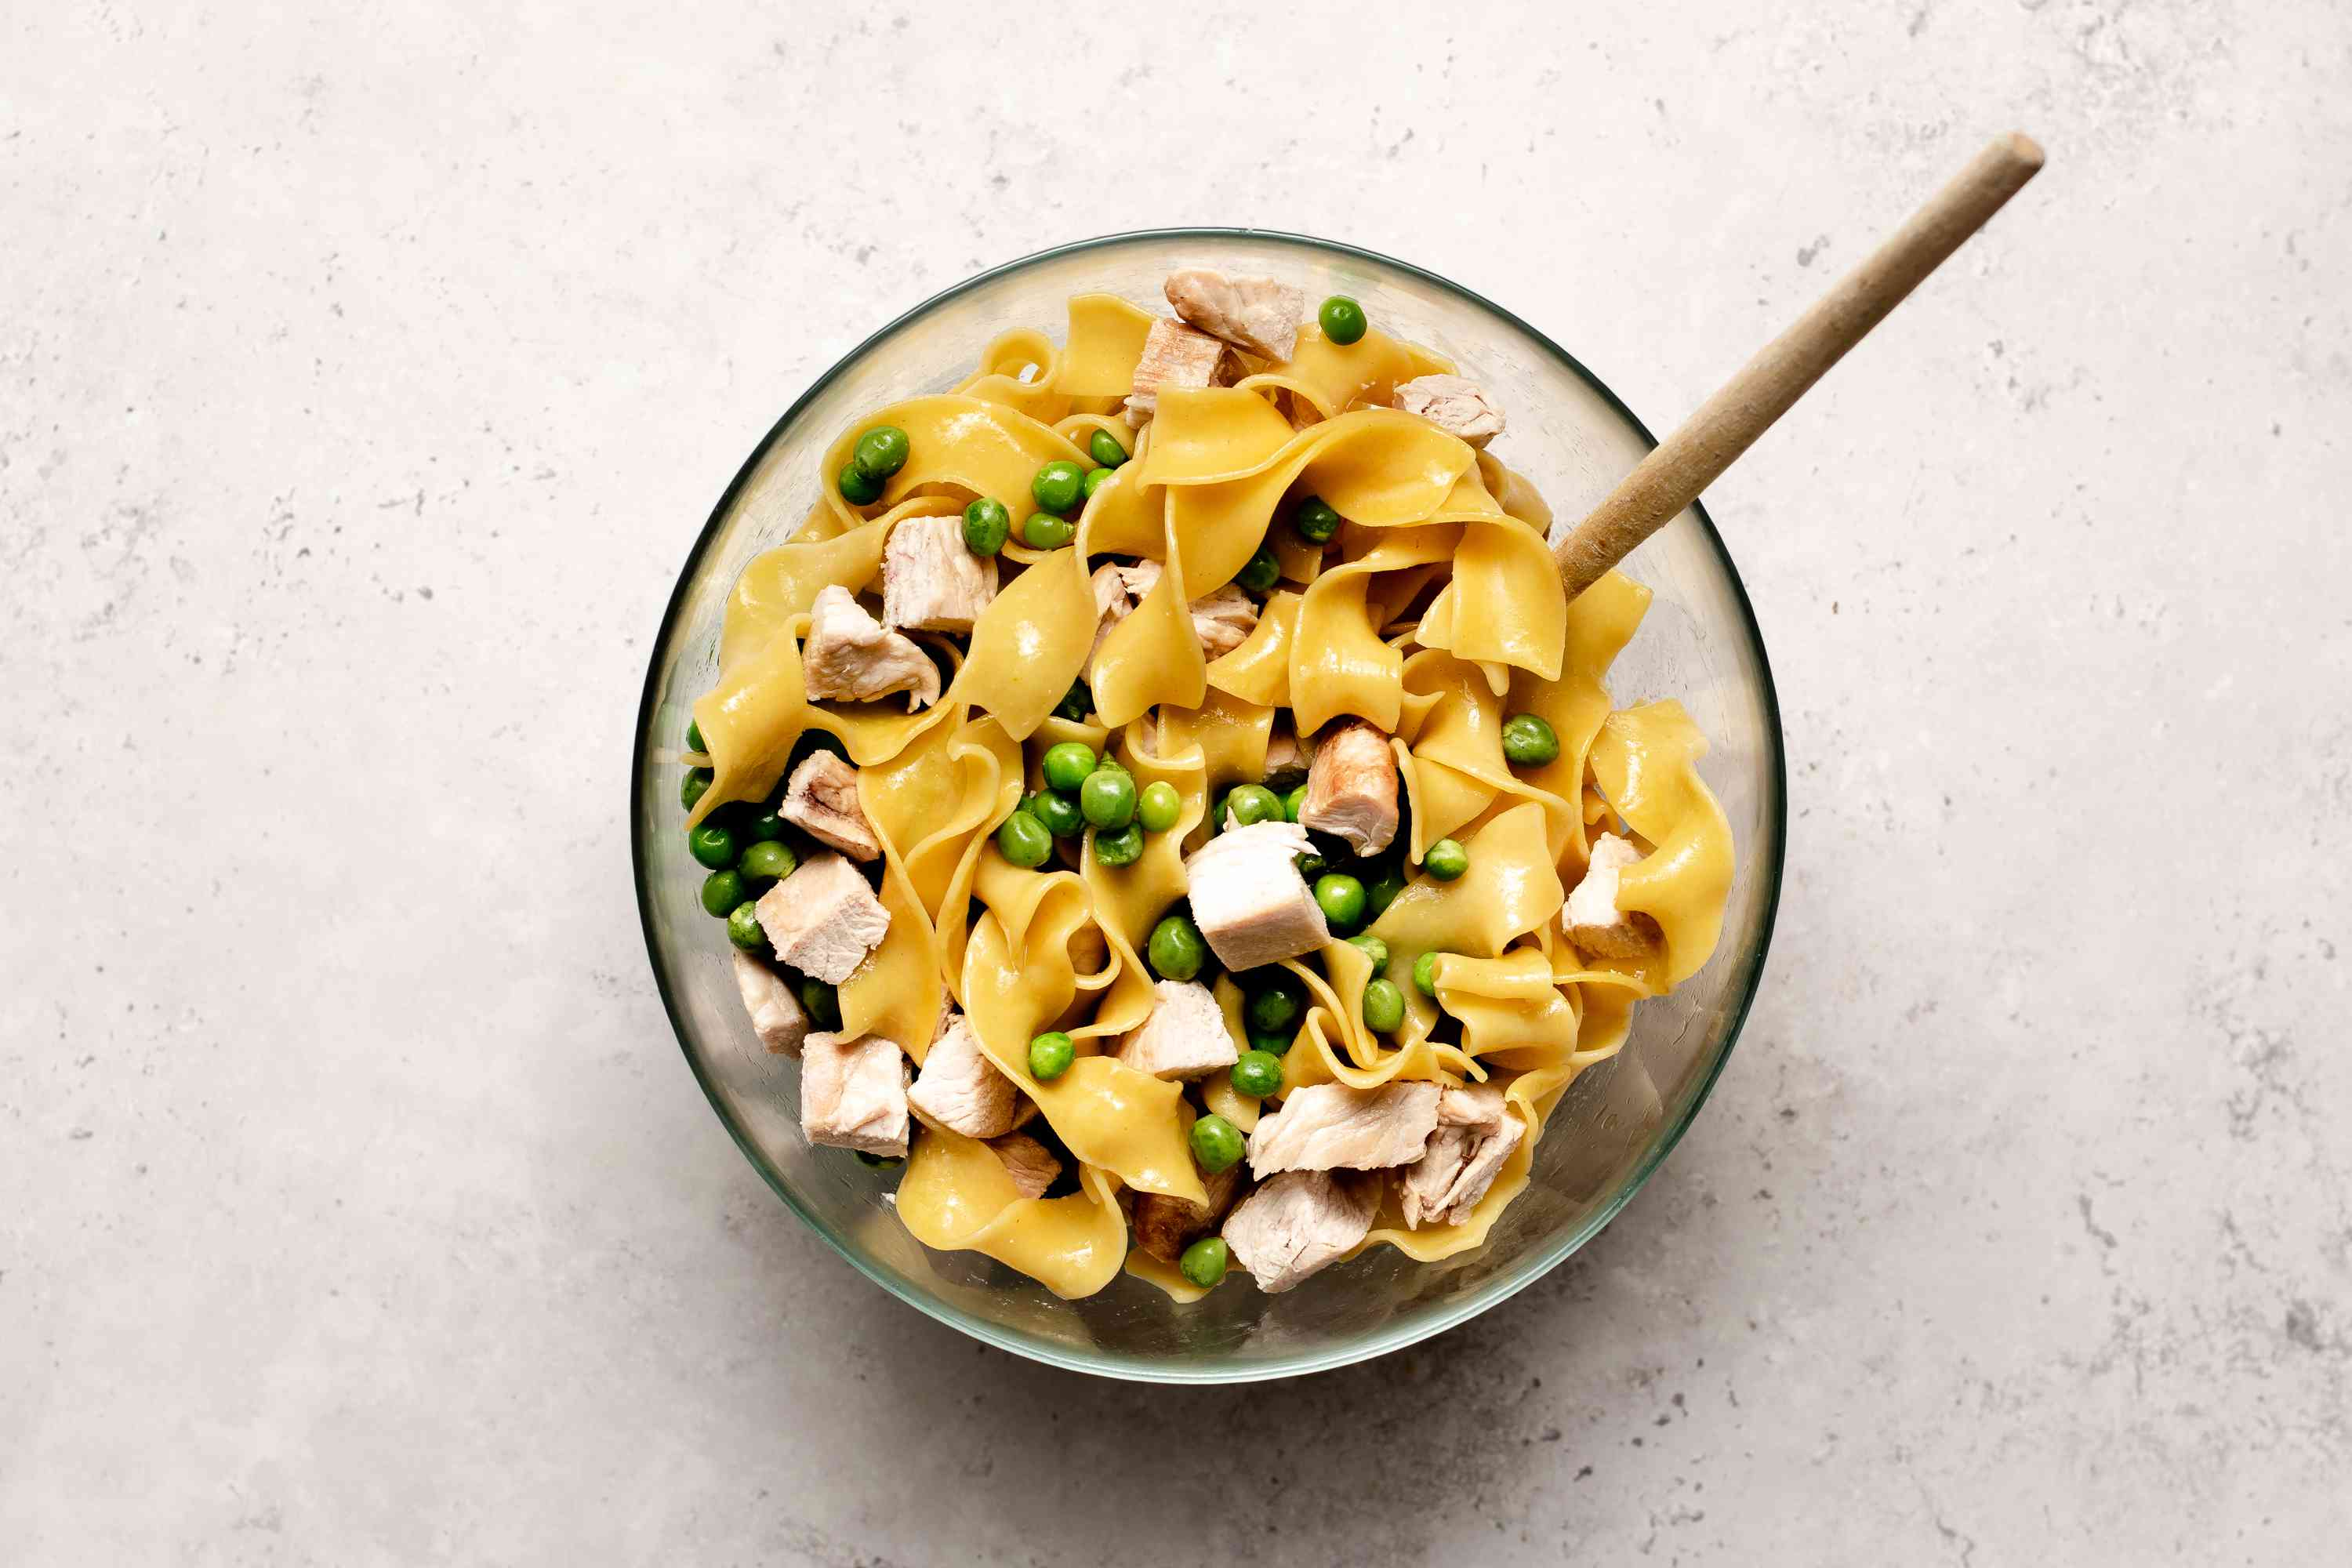 thawed peas in a large bowl with the diced cooked turkey and cooked noodles